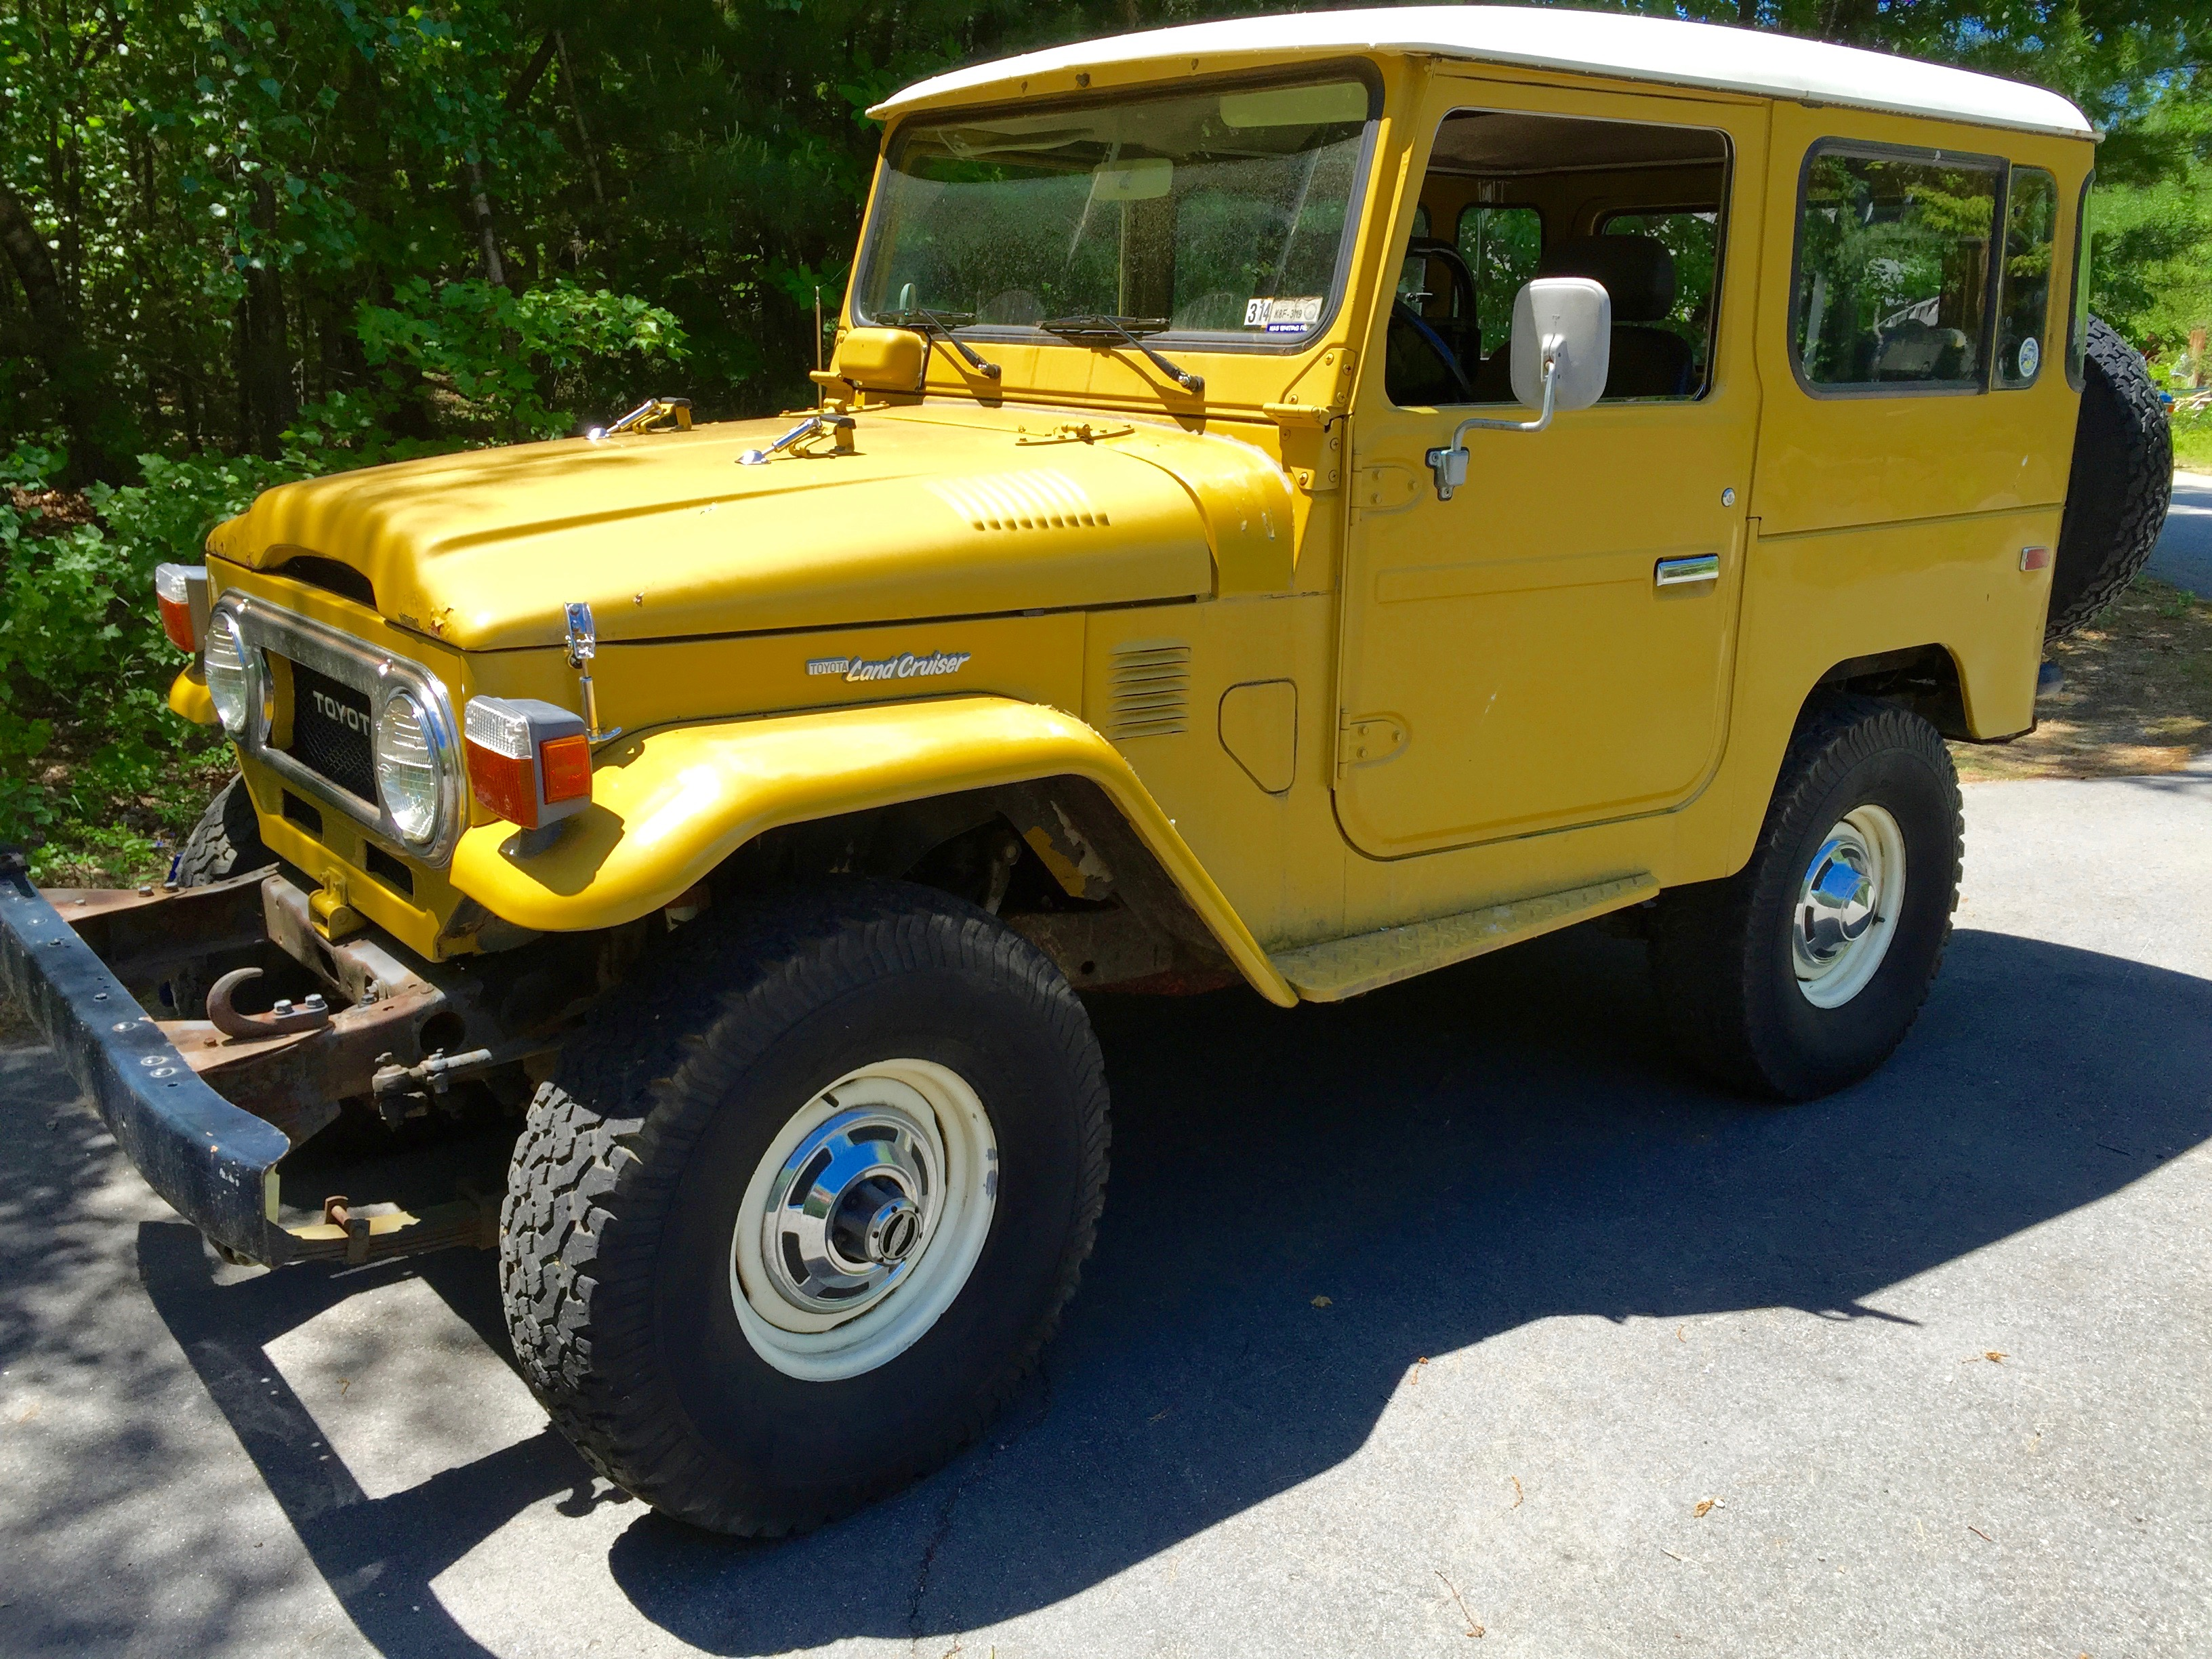 1978 FJ40 Land Cruiser